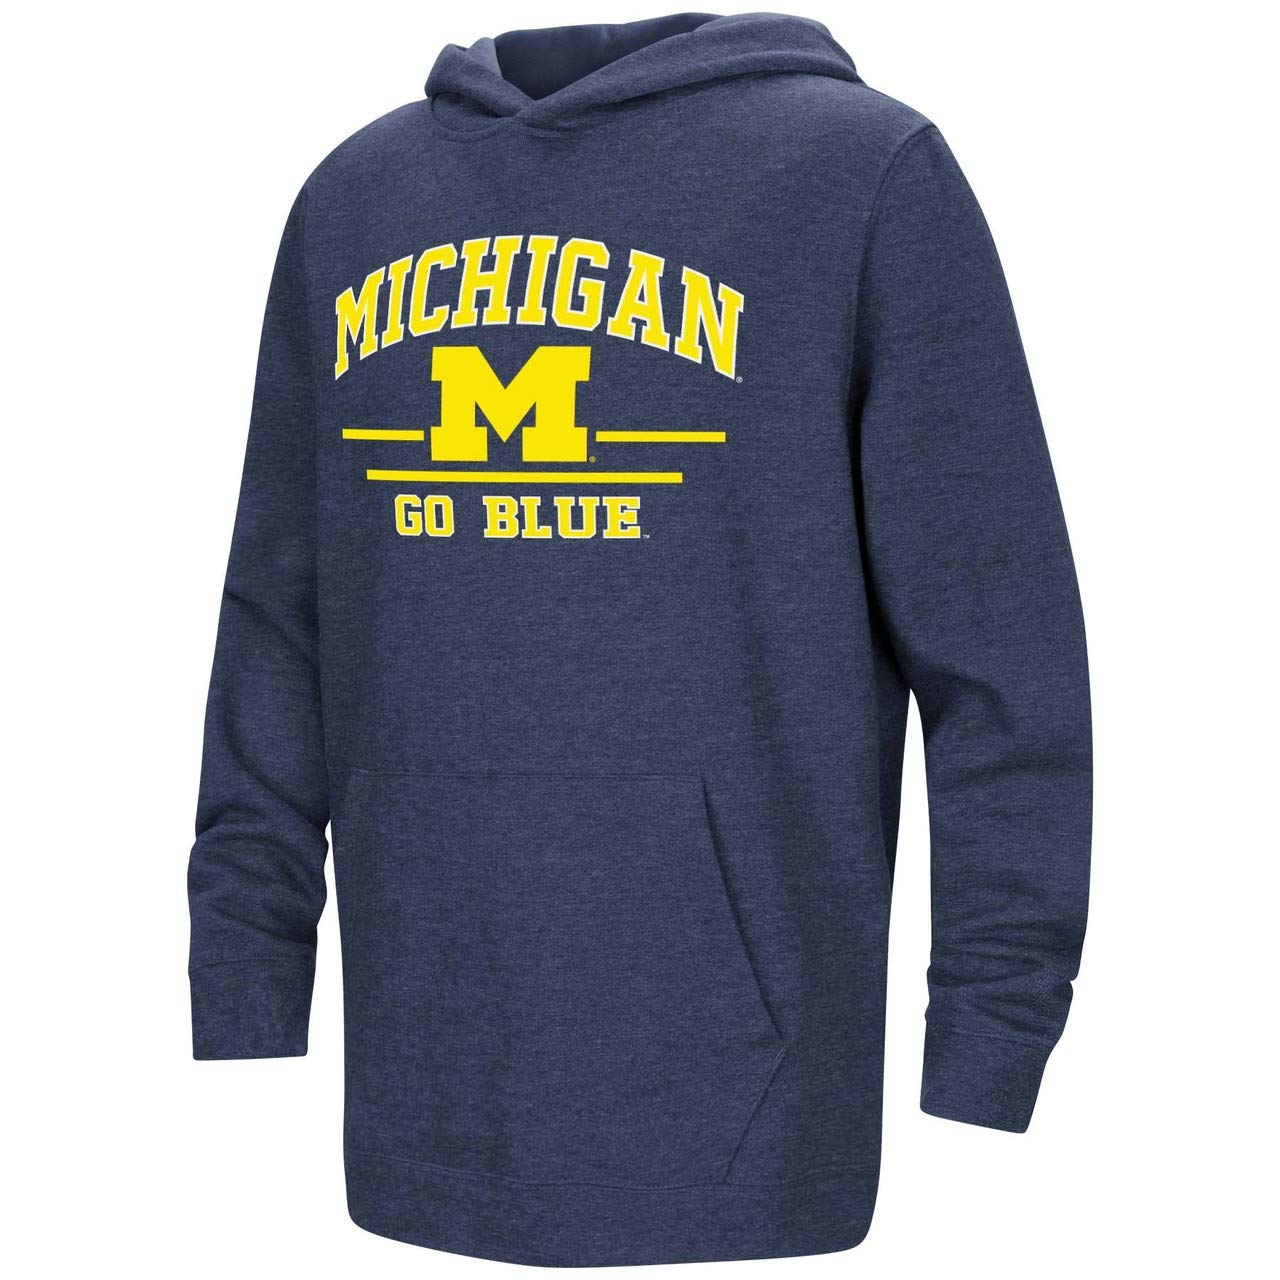 Buy Michigan Now!